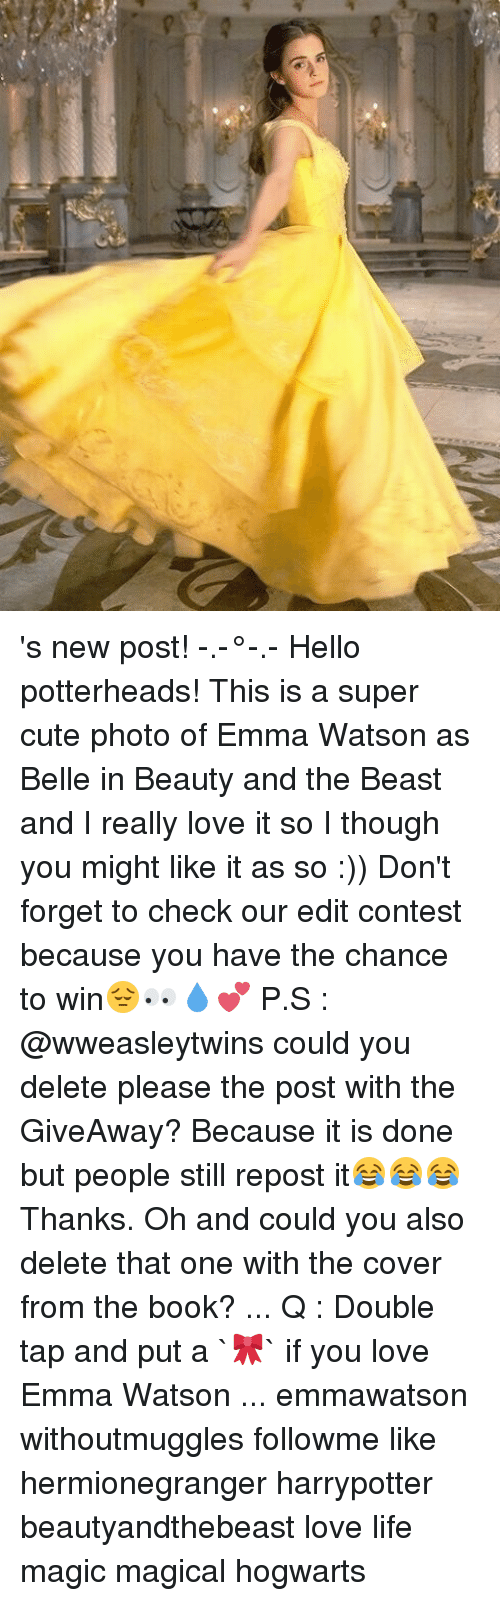 Emma Watson, Memes, and Beauty and the Beast: 's new post! -.-°-.- Hello potterheads! This is a super cute photo of Emma Watson as Belle in Beauty and the Beast and I really love it so I though you might like it as so :)) Don't forget to check our edit contest because you have the chance to win😔👀💧💕 P.S : @wweasleytwins could you delete please the post with the GiveAway? Because it is done but people still repost it😂😂😂Thanks. Oh and could you also delete that one with the cover from the book? ... Q : Double tap and put a `🎀` if you love Emma Watson ... emmawatson withoutmuggles followme like hermionegranger harrypotter beautyandthebeast love life magic magical hogwarts